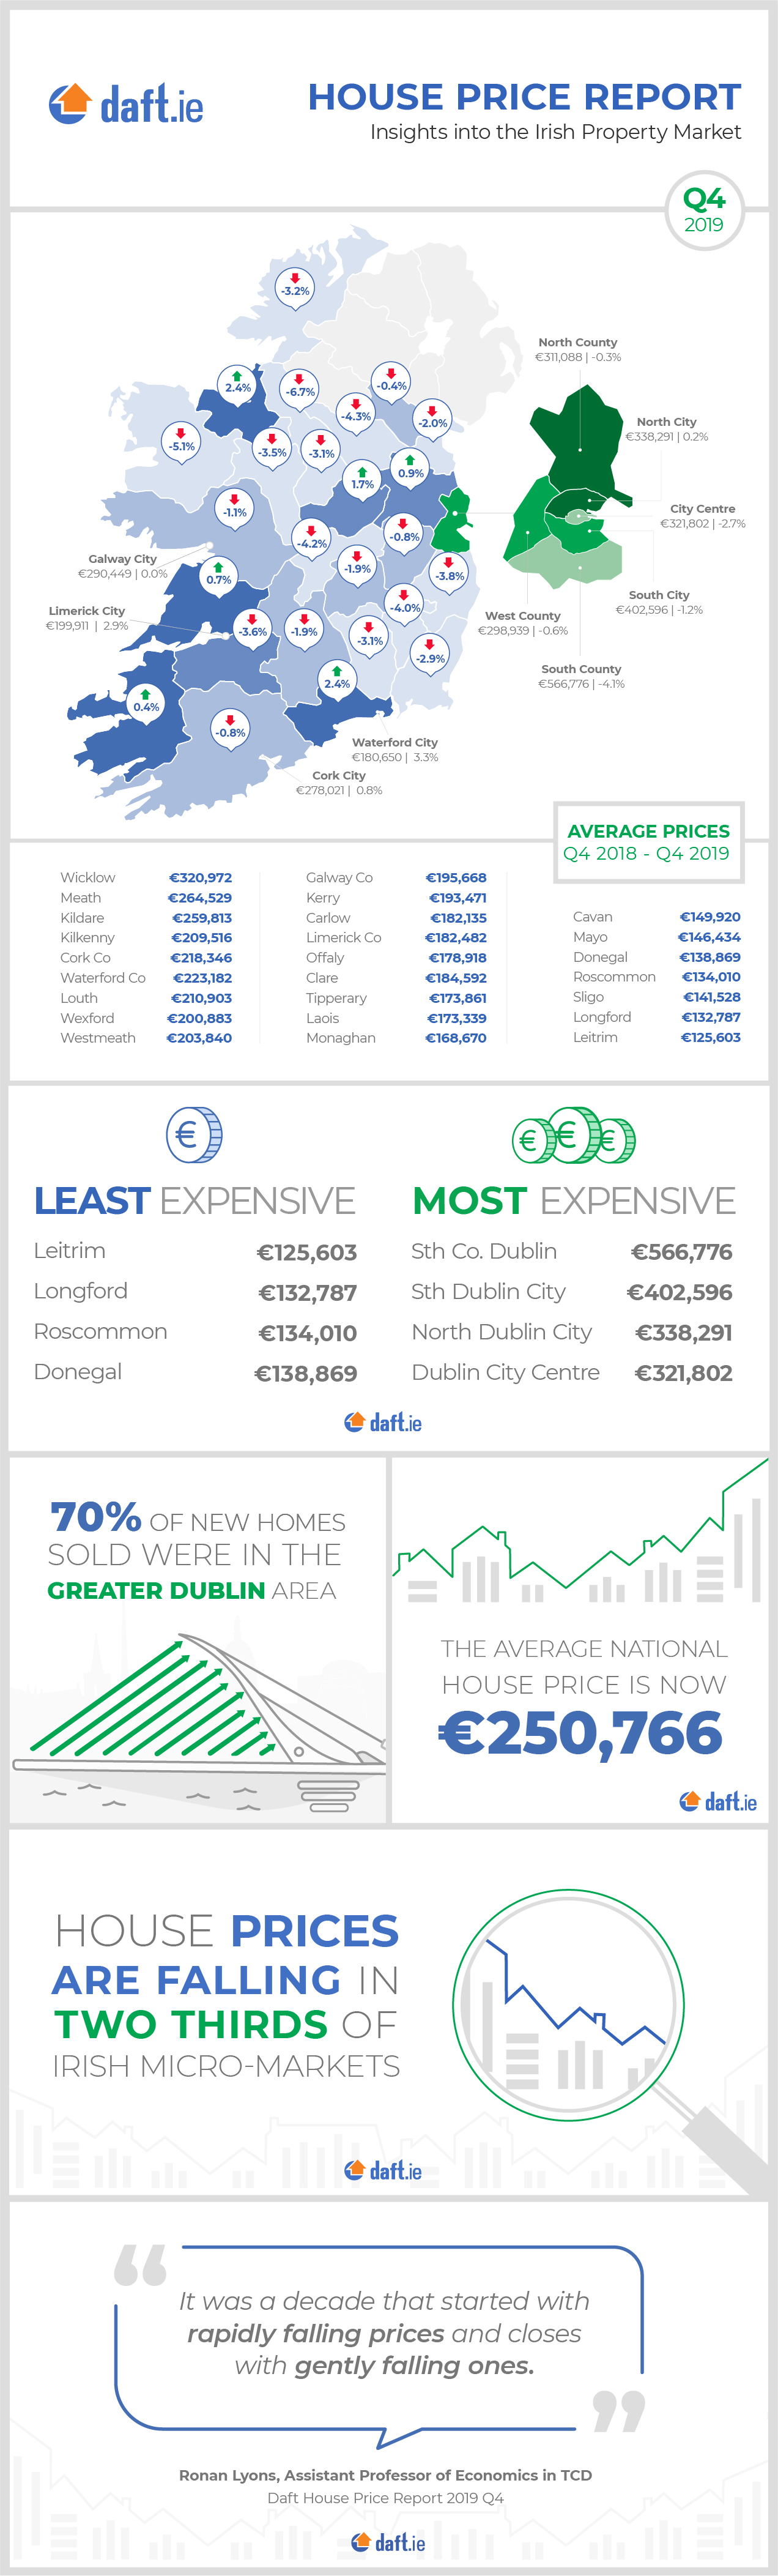 Daft.ie House Price Report: Q4 2019 Infographic